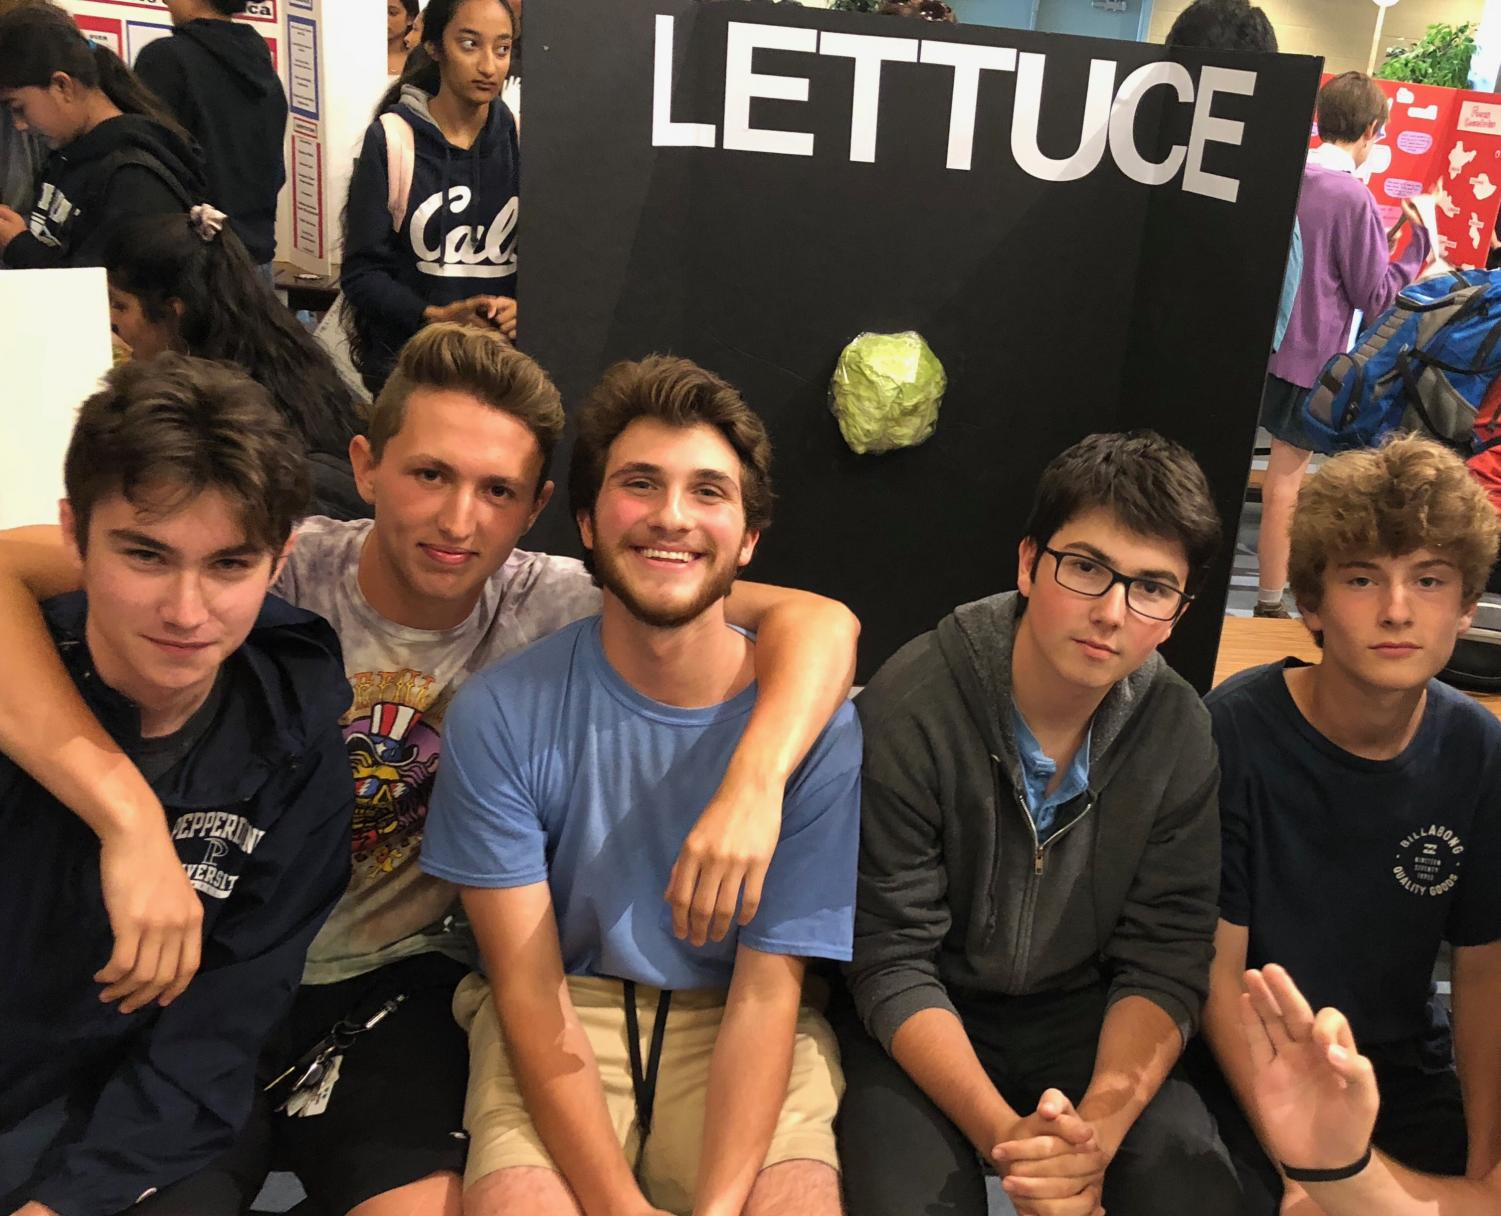 Lettuce club's first club week, resulting in 243 sign-ups